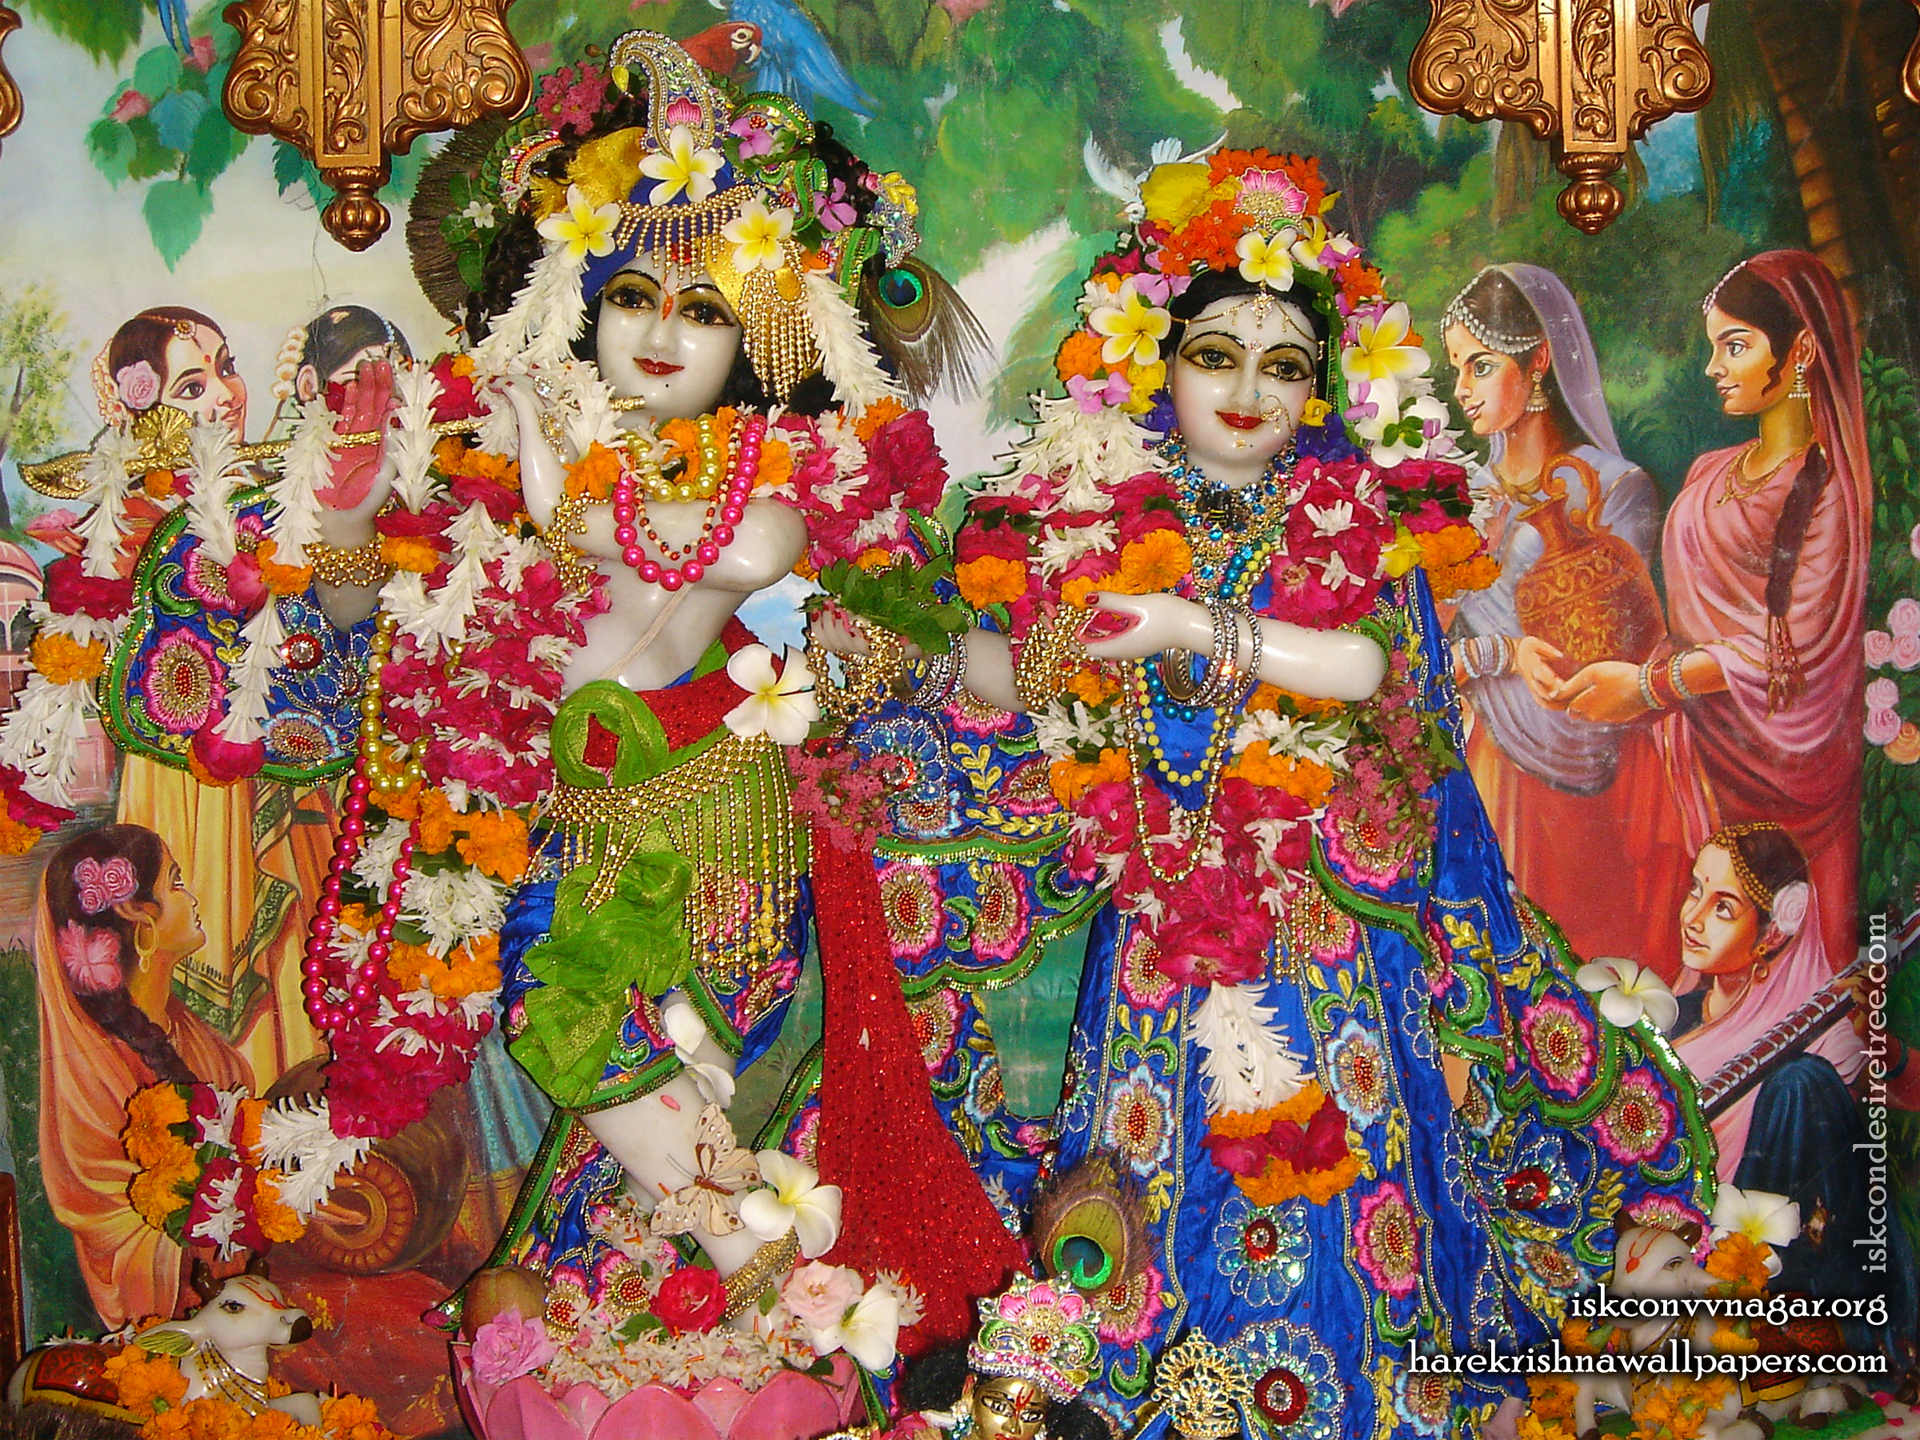 Sri Sri Radha Giridhari Wallpaper (026) Size 1920x1440 Download